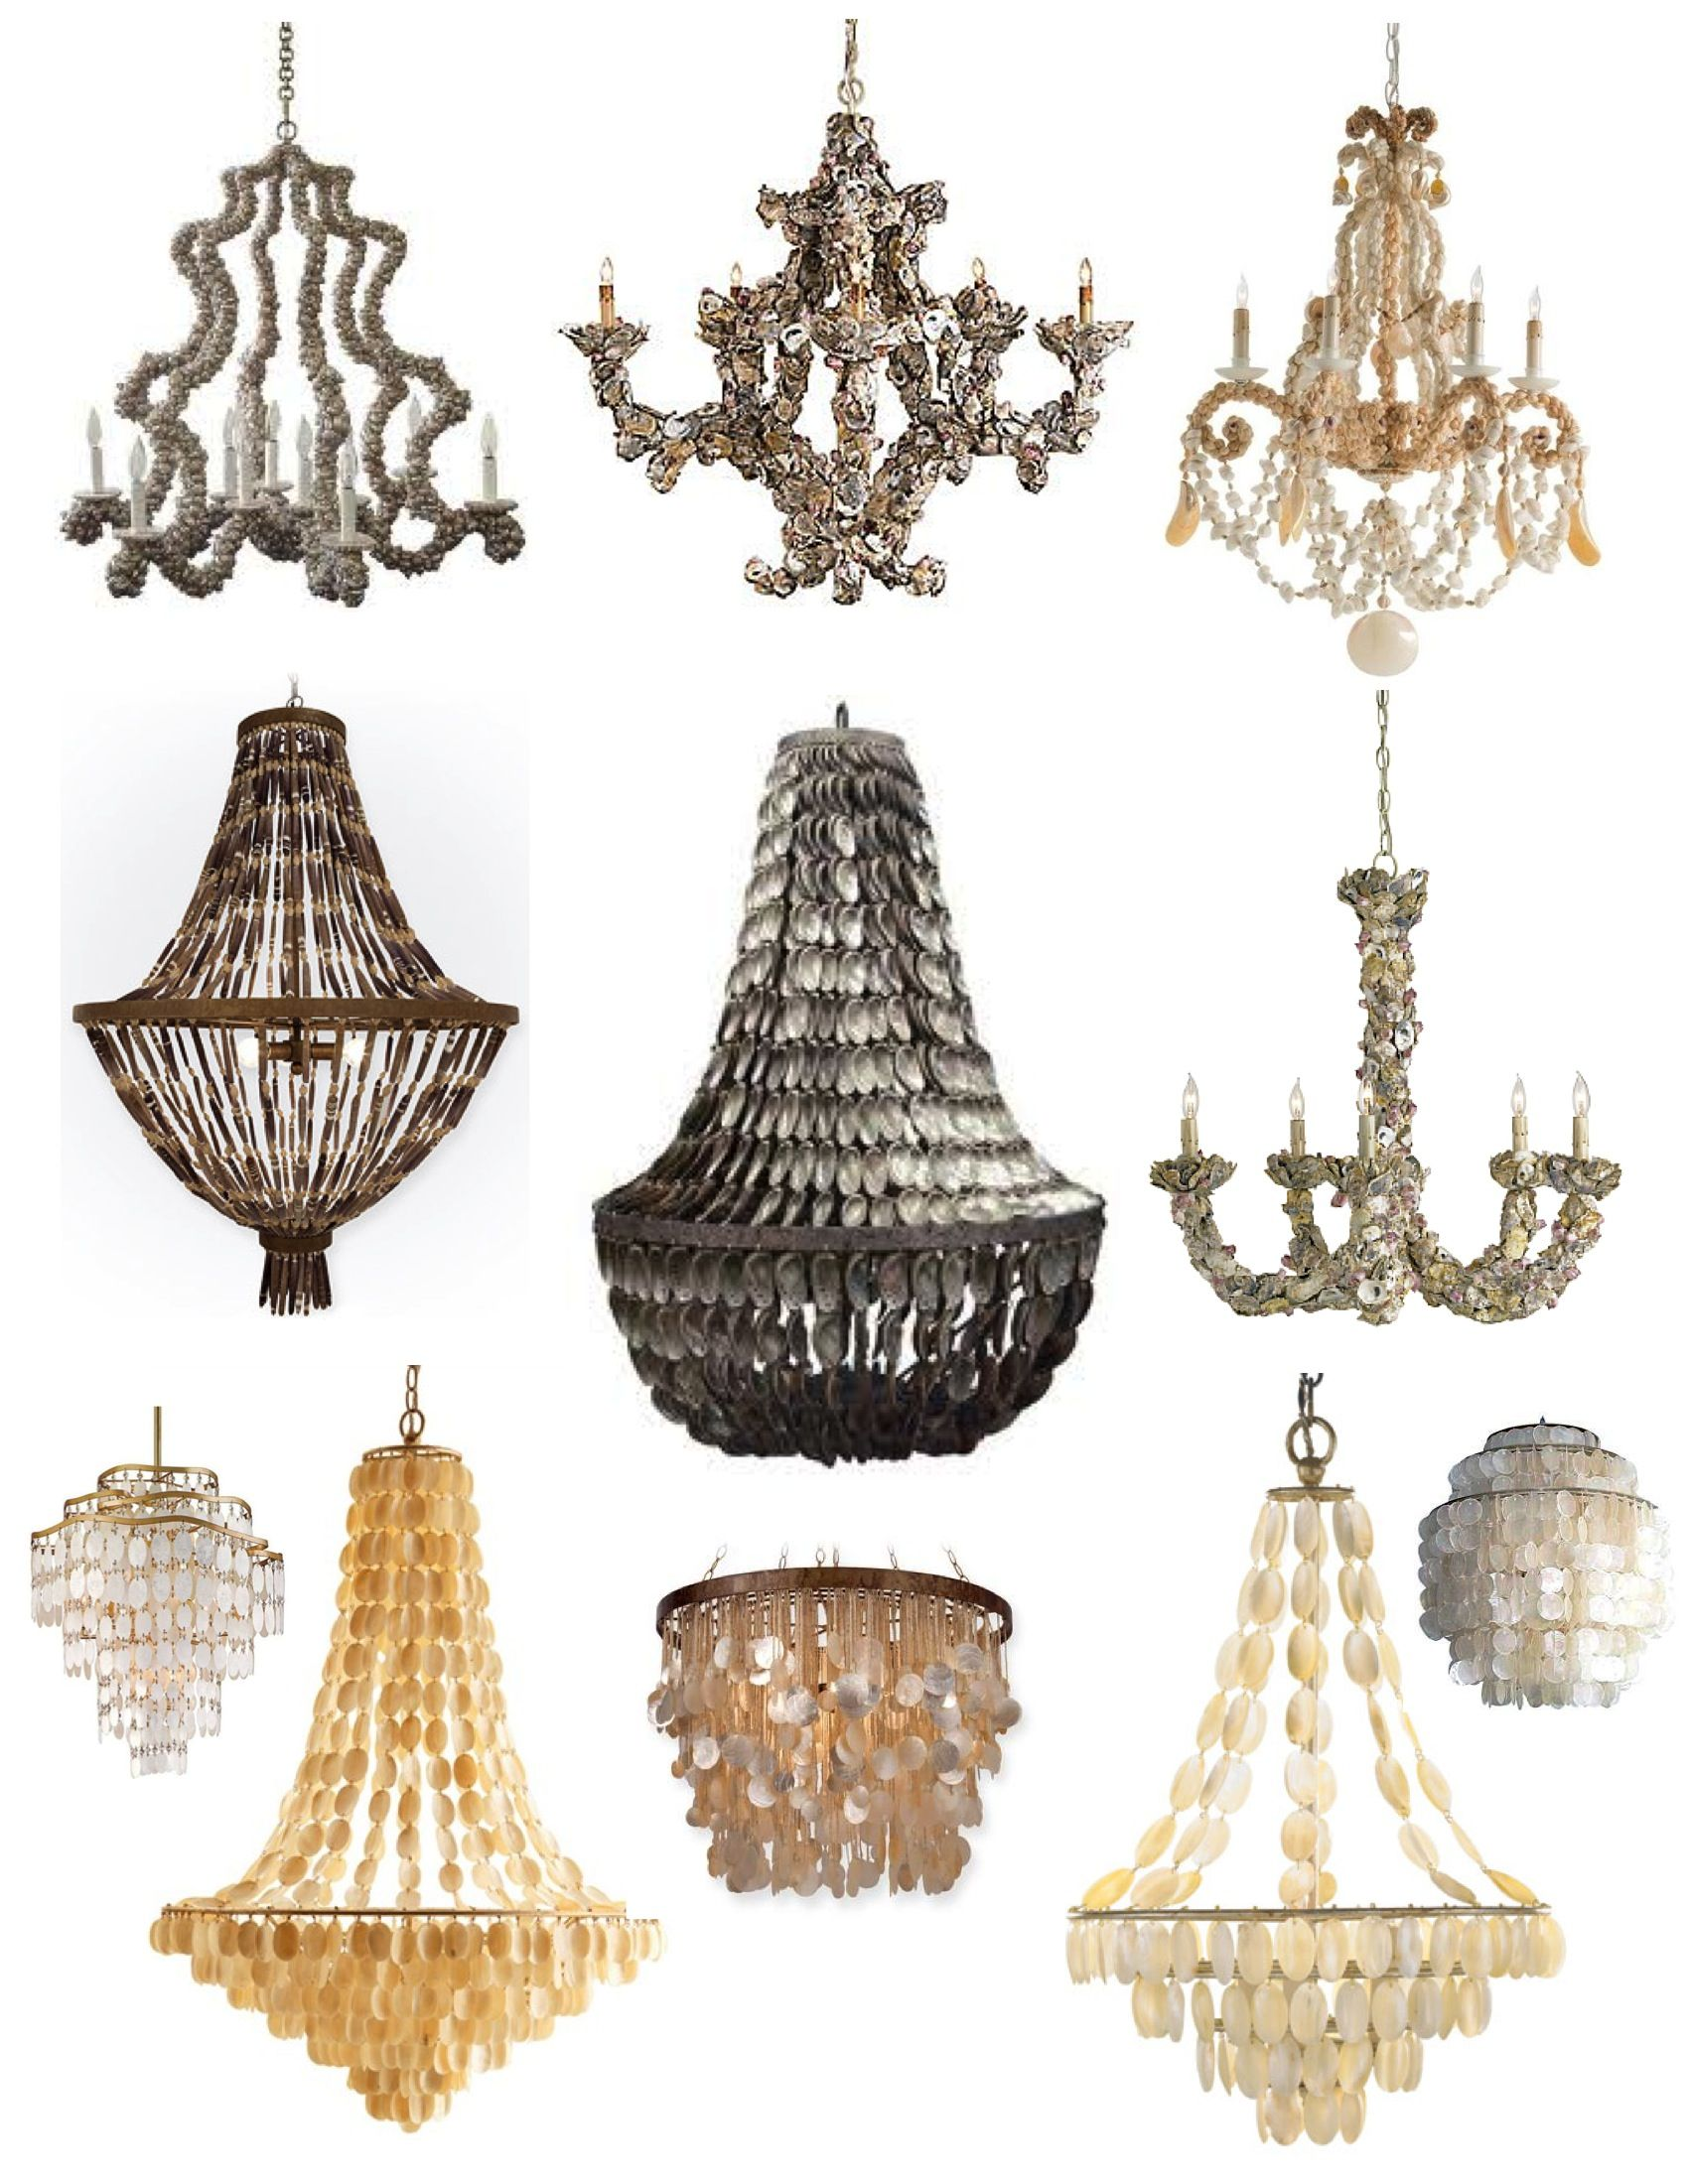 Natural Inspirations From The Sea Shell Chandeliers